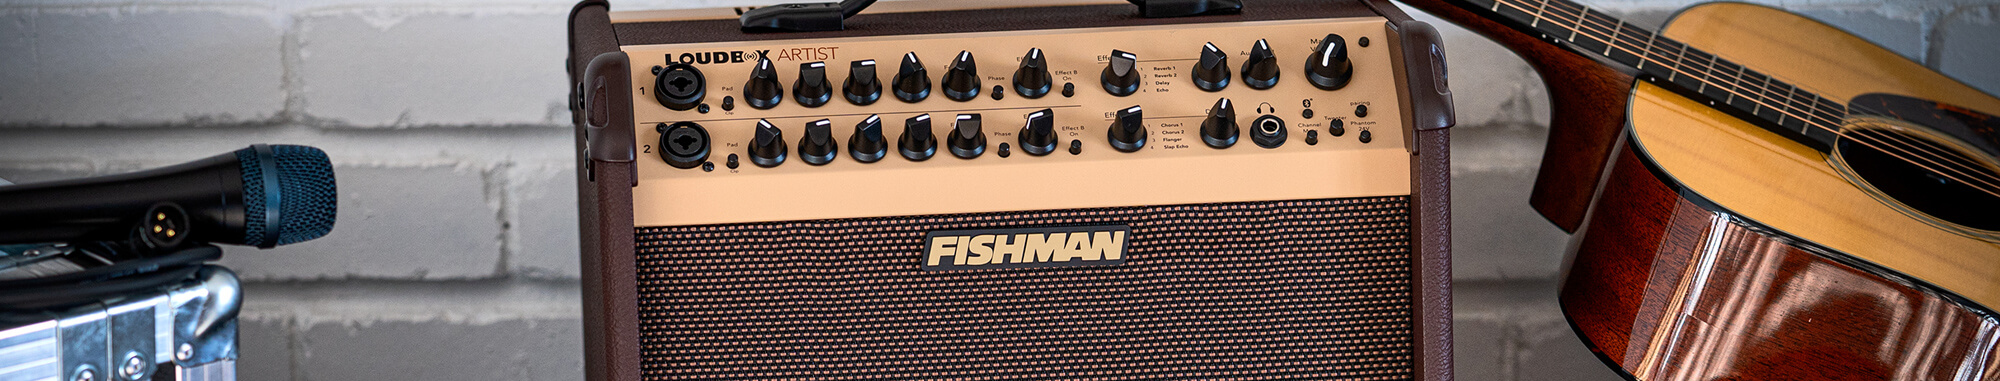 Fishman Loudbox Artist with acoustic guitar